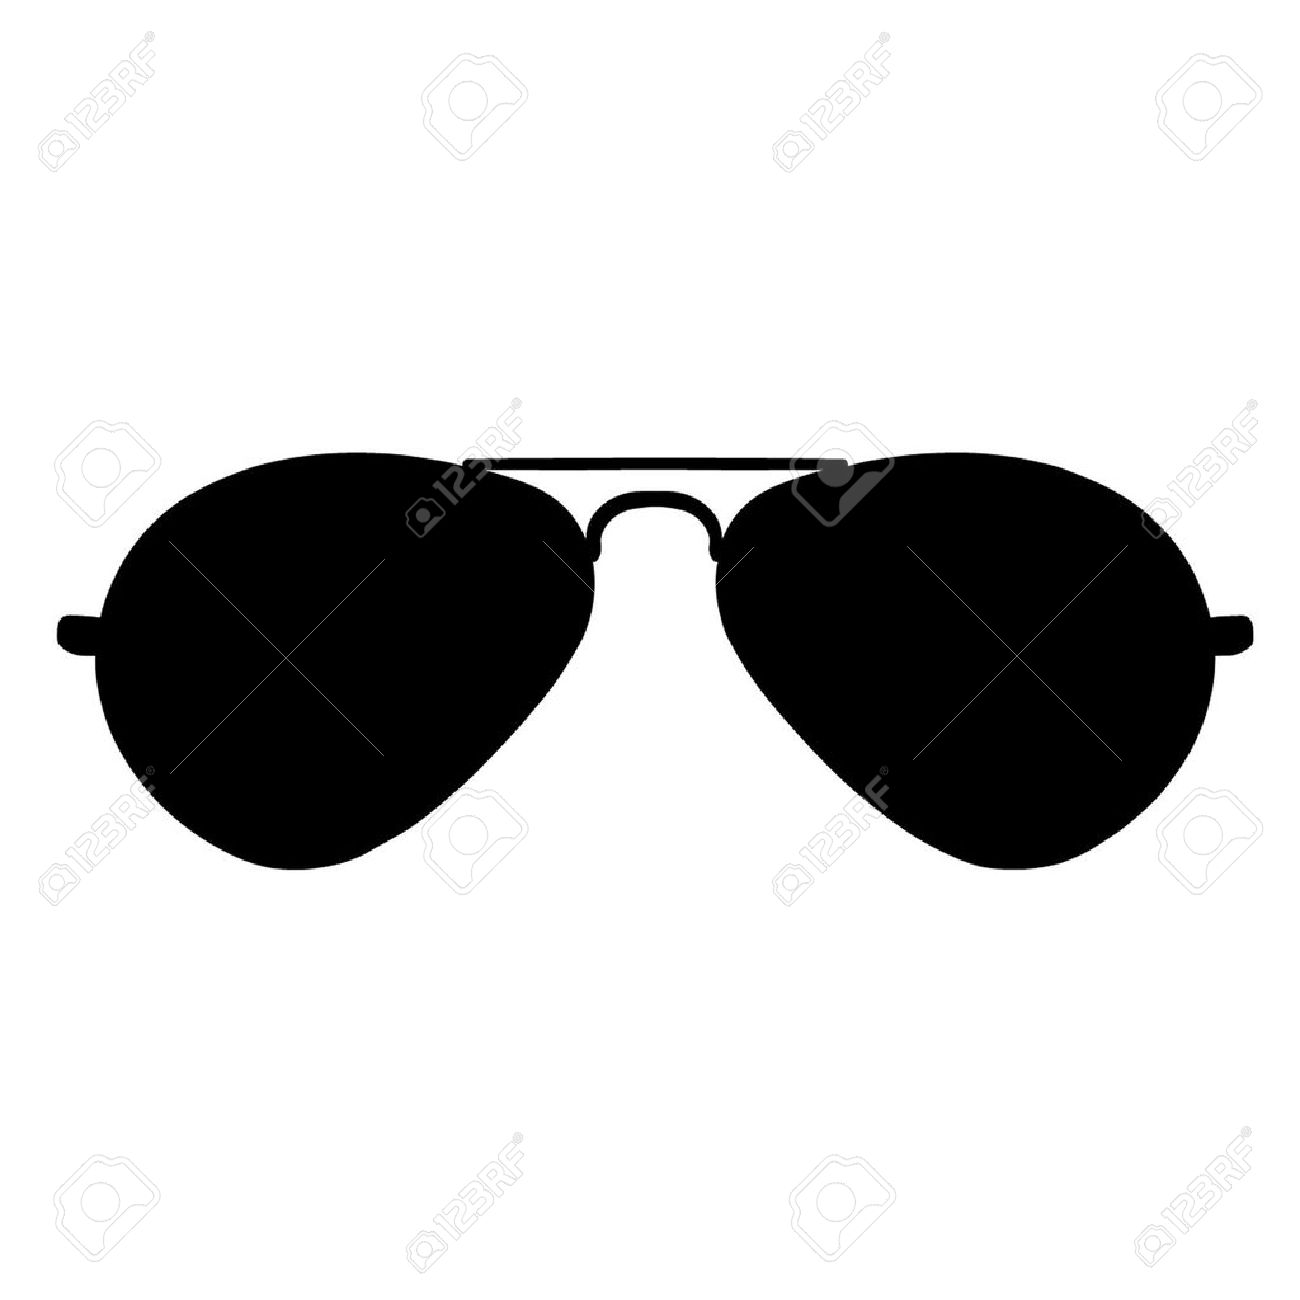 Aviator glasses clipart 4 » Clipart Station.